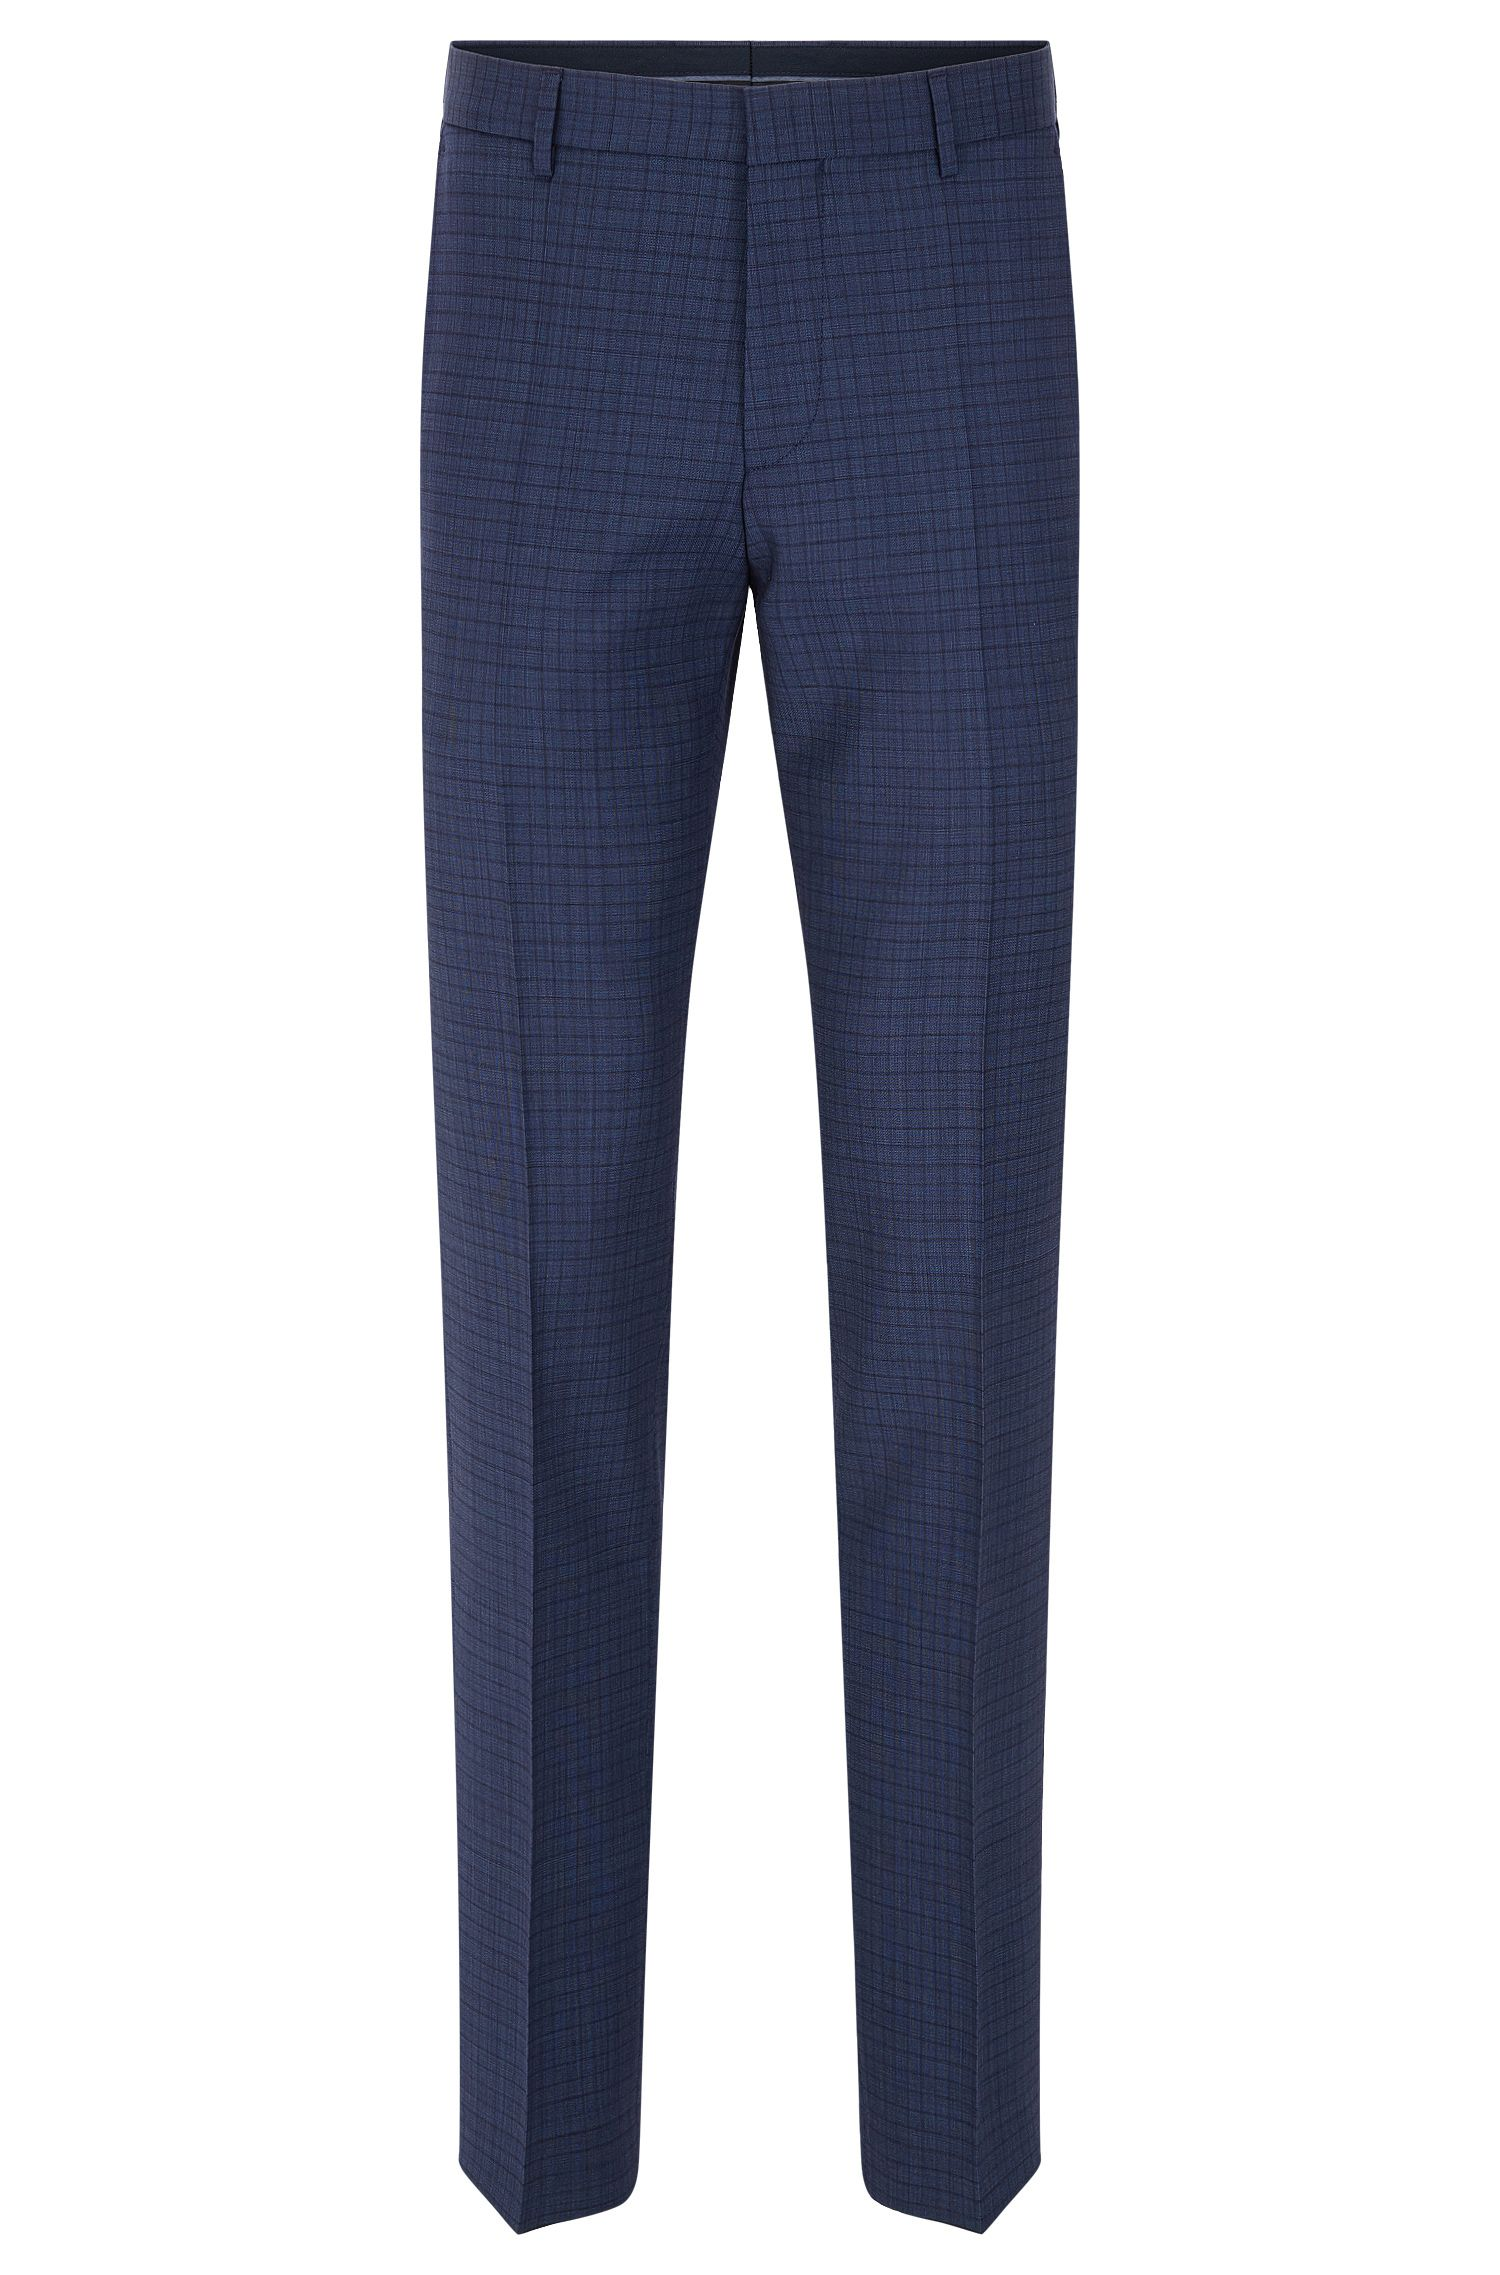 'Genesis' | Slim Fit, Virgin Wool Dress Pants